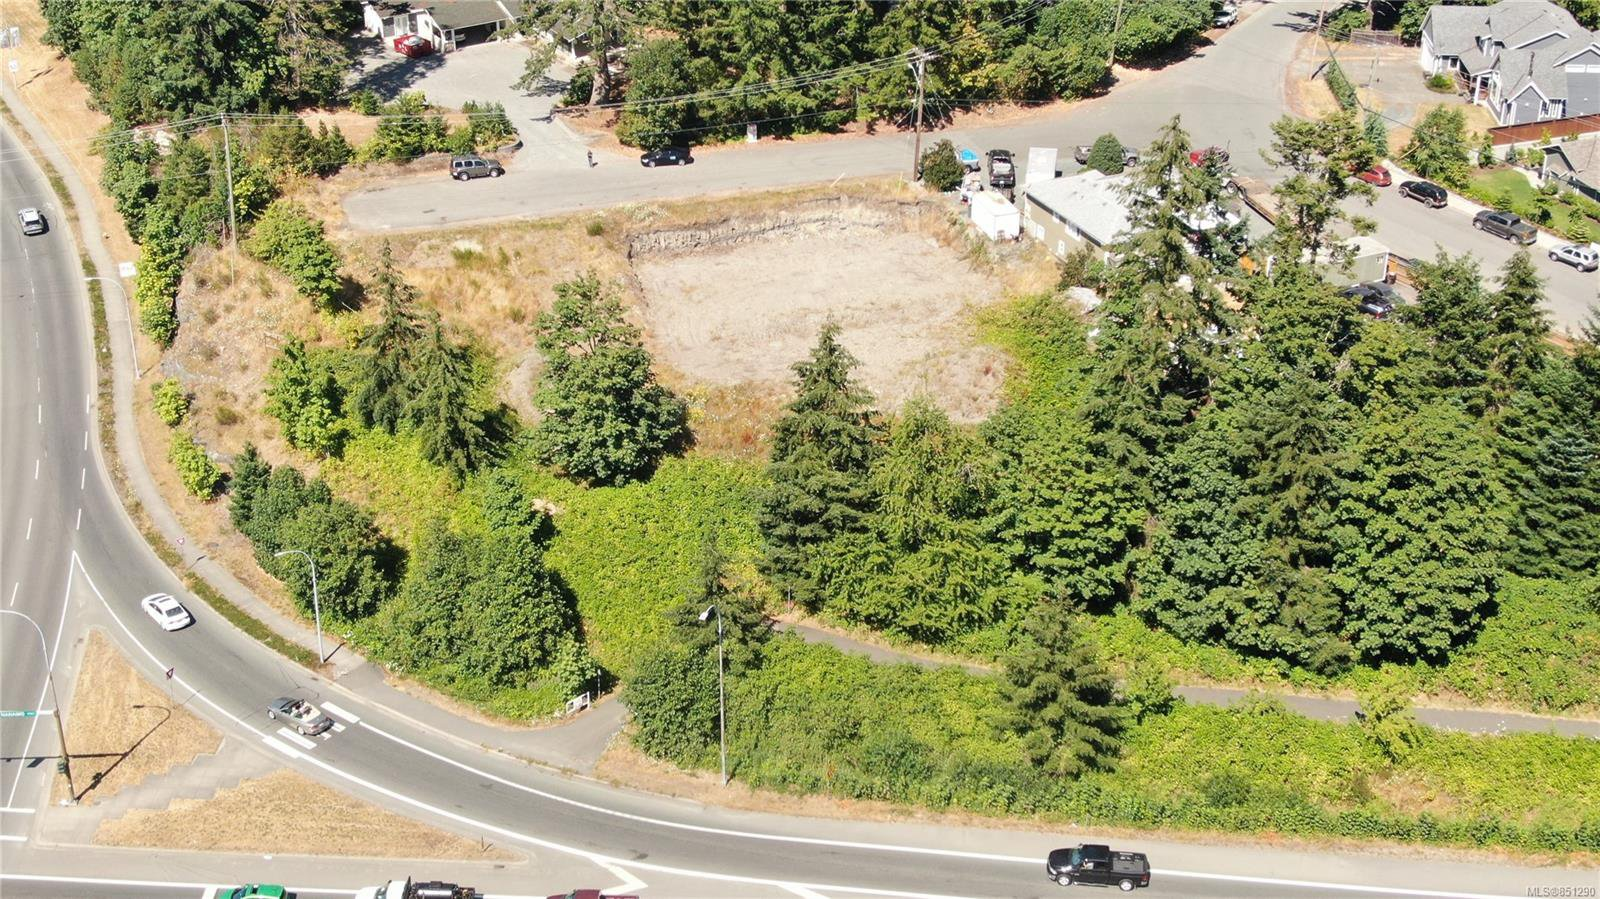 Main Photo: 4063 Old Slope Pl in : Na North Nanaimo Industrial for sale (Nanaimo)  : MLS®# 851290